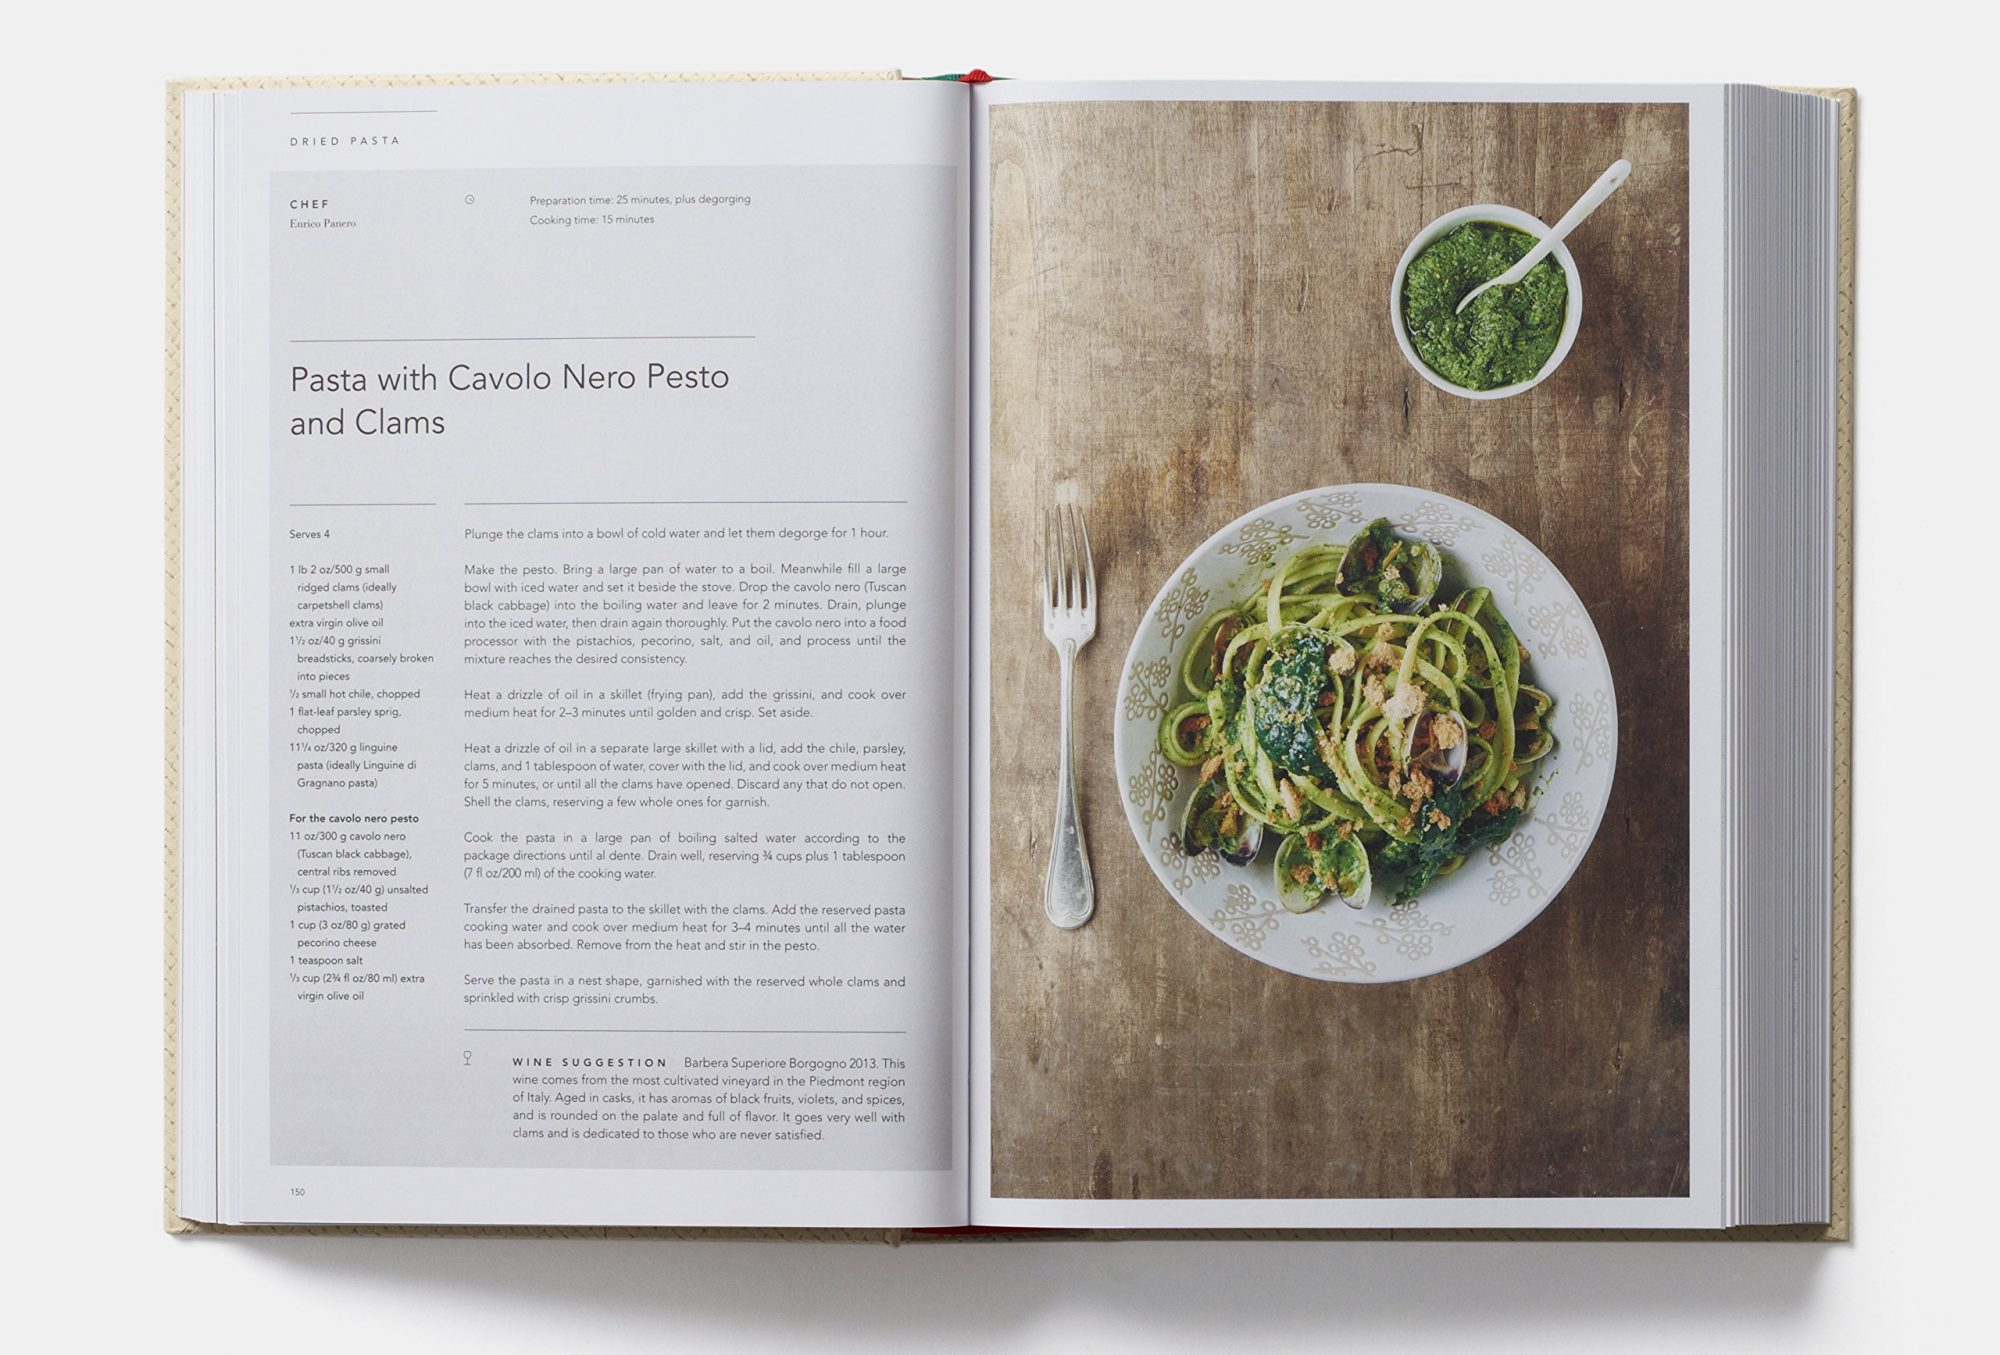 food gifts eataly cookbook